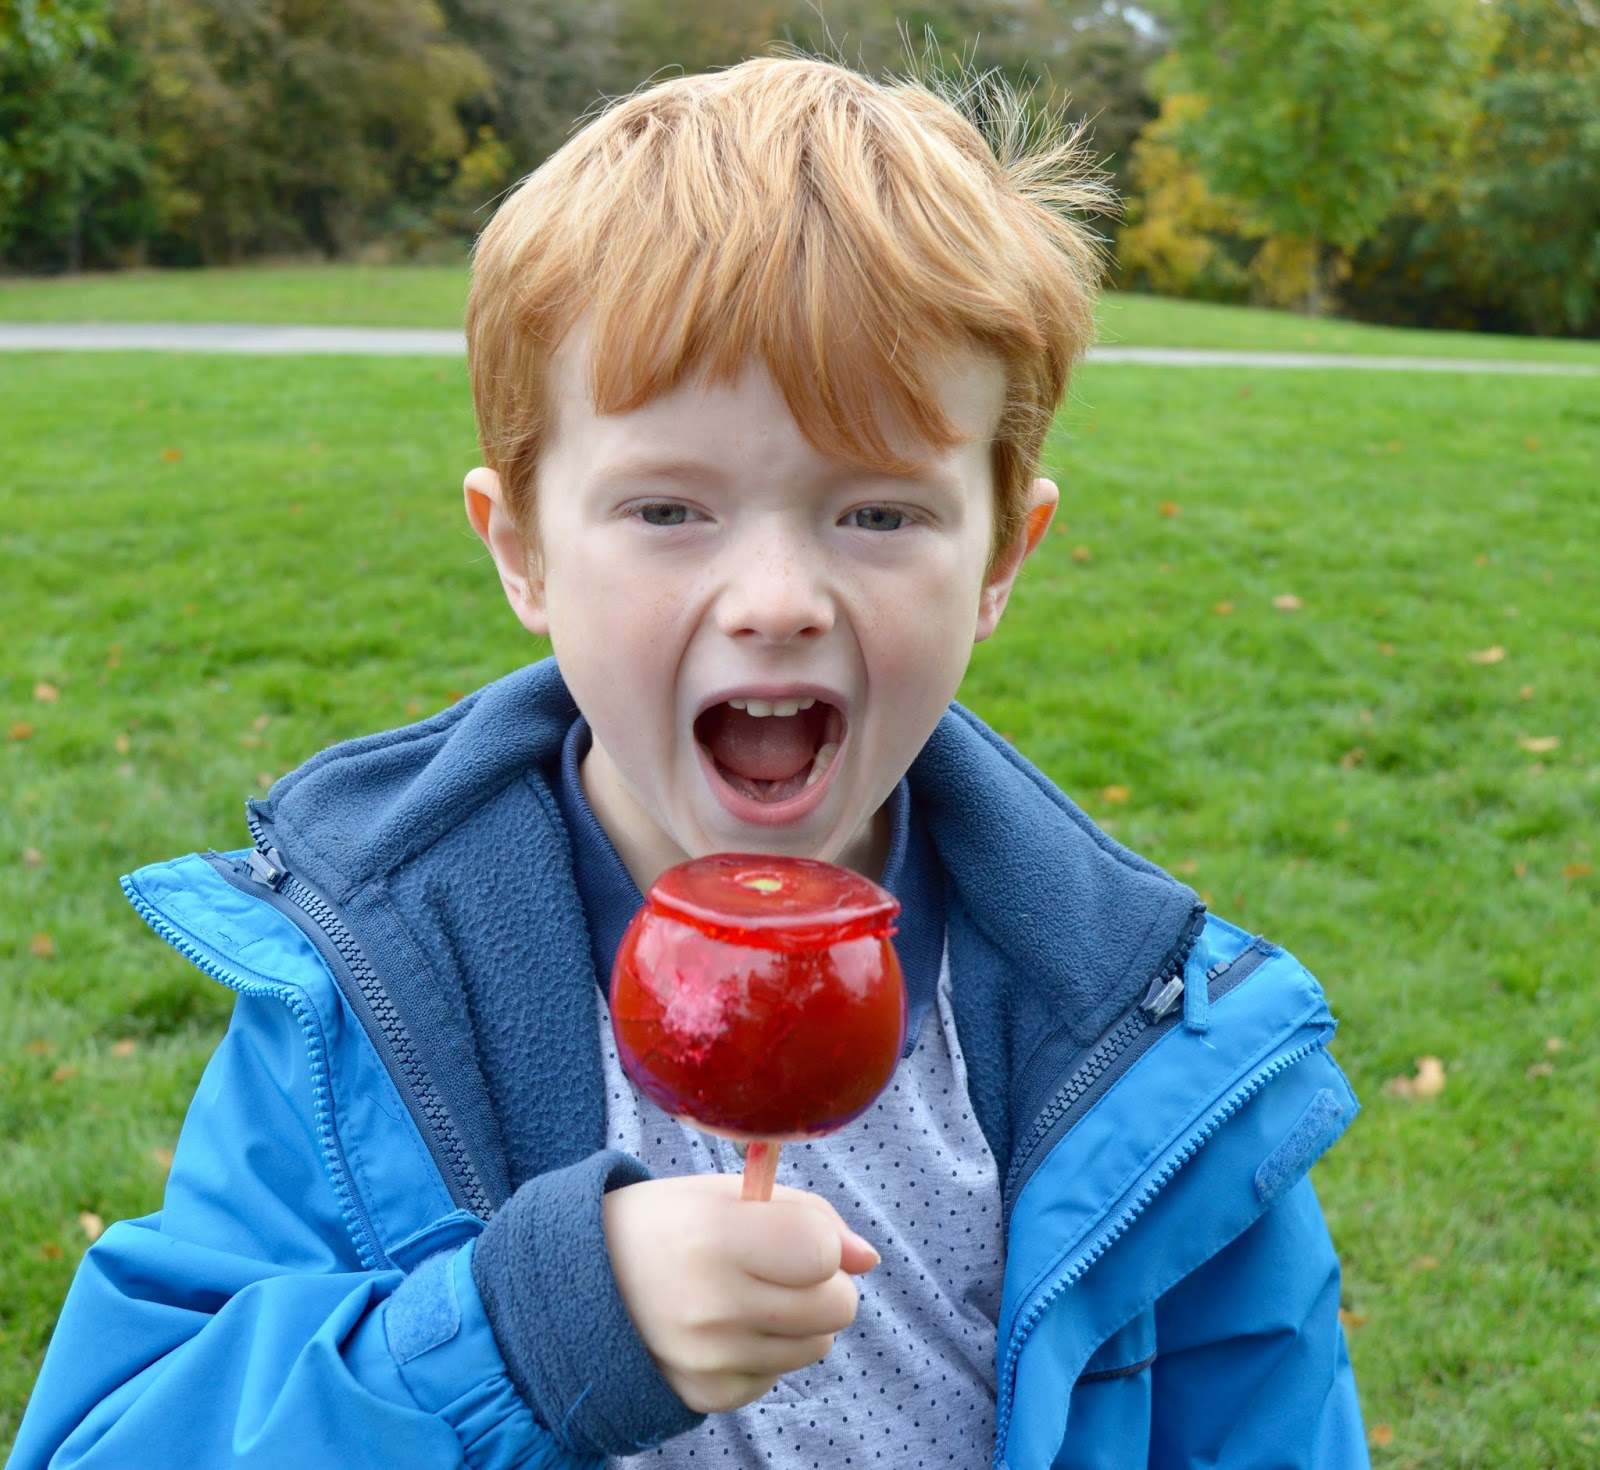 Half Term Hocus Pocus at Preston Park | The North East's very own Diagon Alley - toffee apple